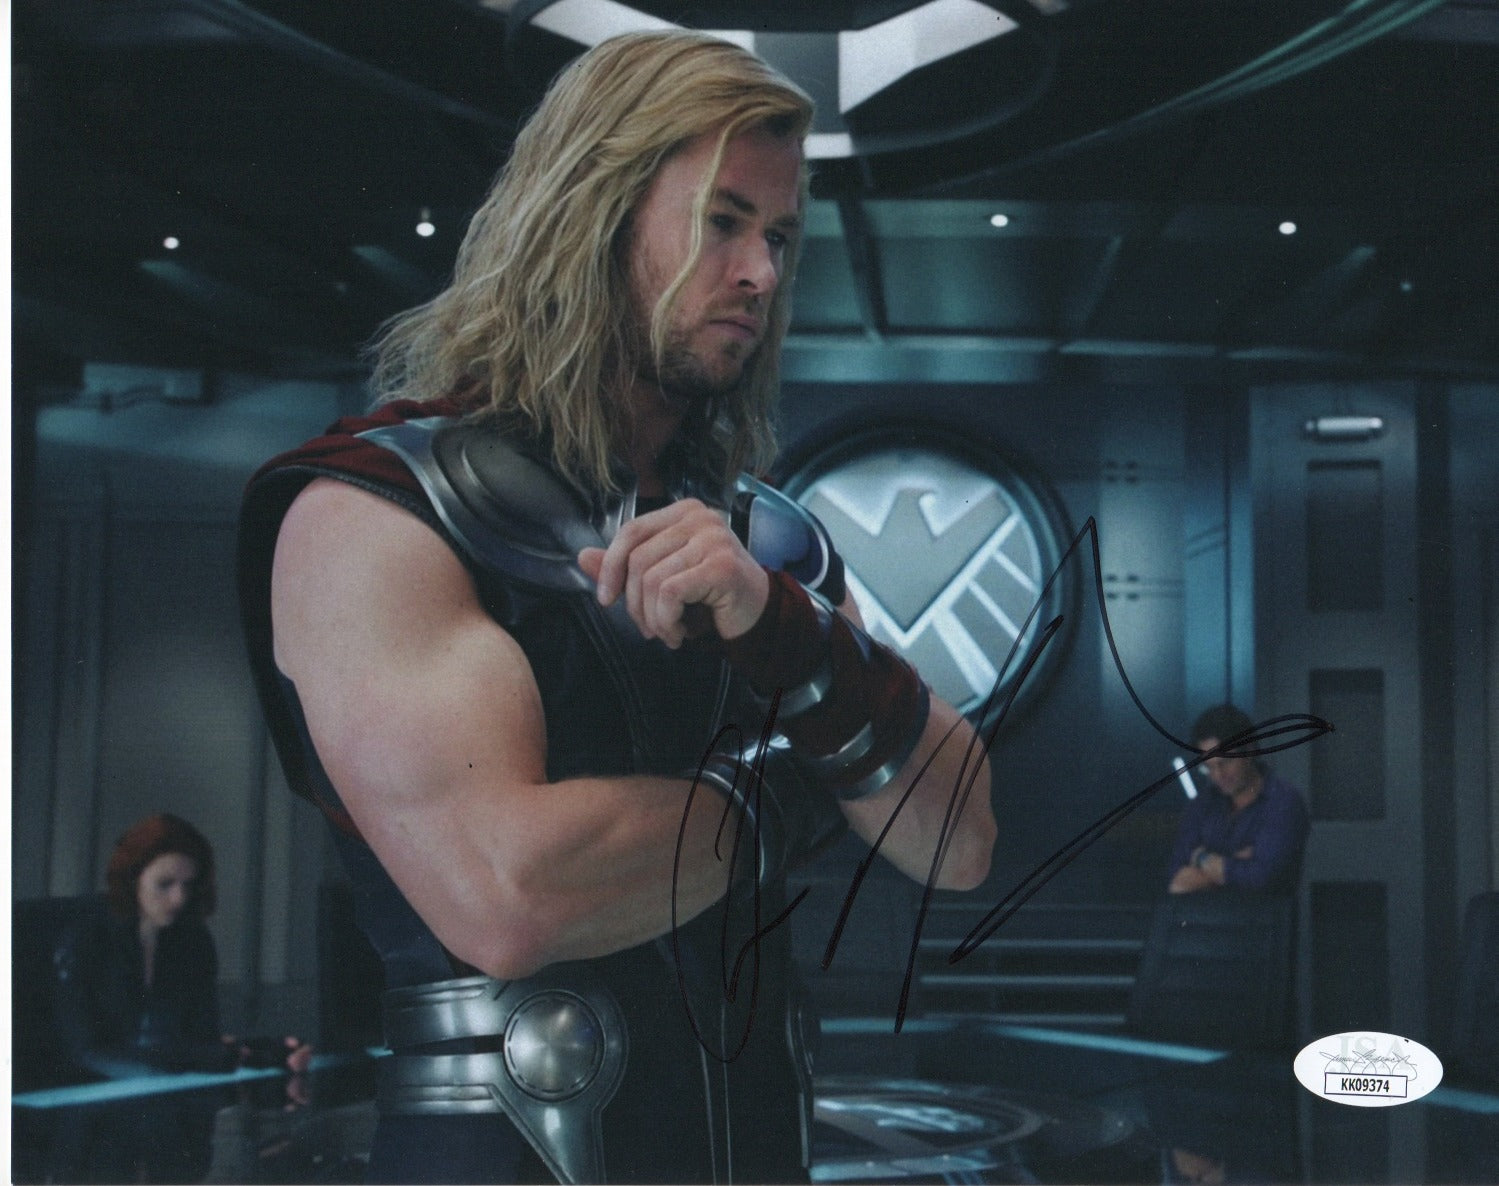 Chris Hemsworth Avengers Thor Signed Autograph 8x10 Photo JSA